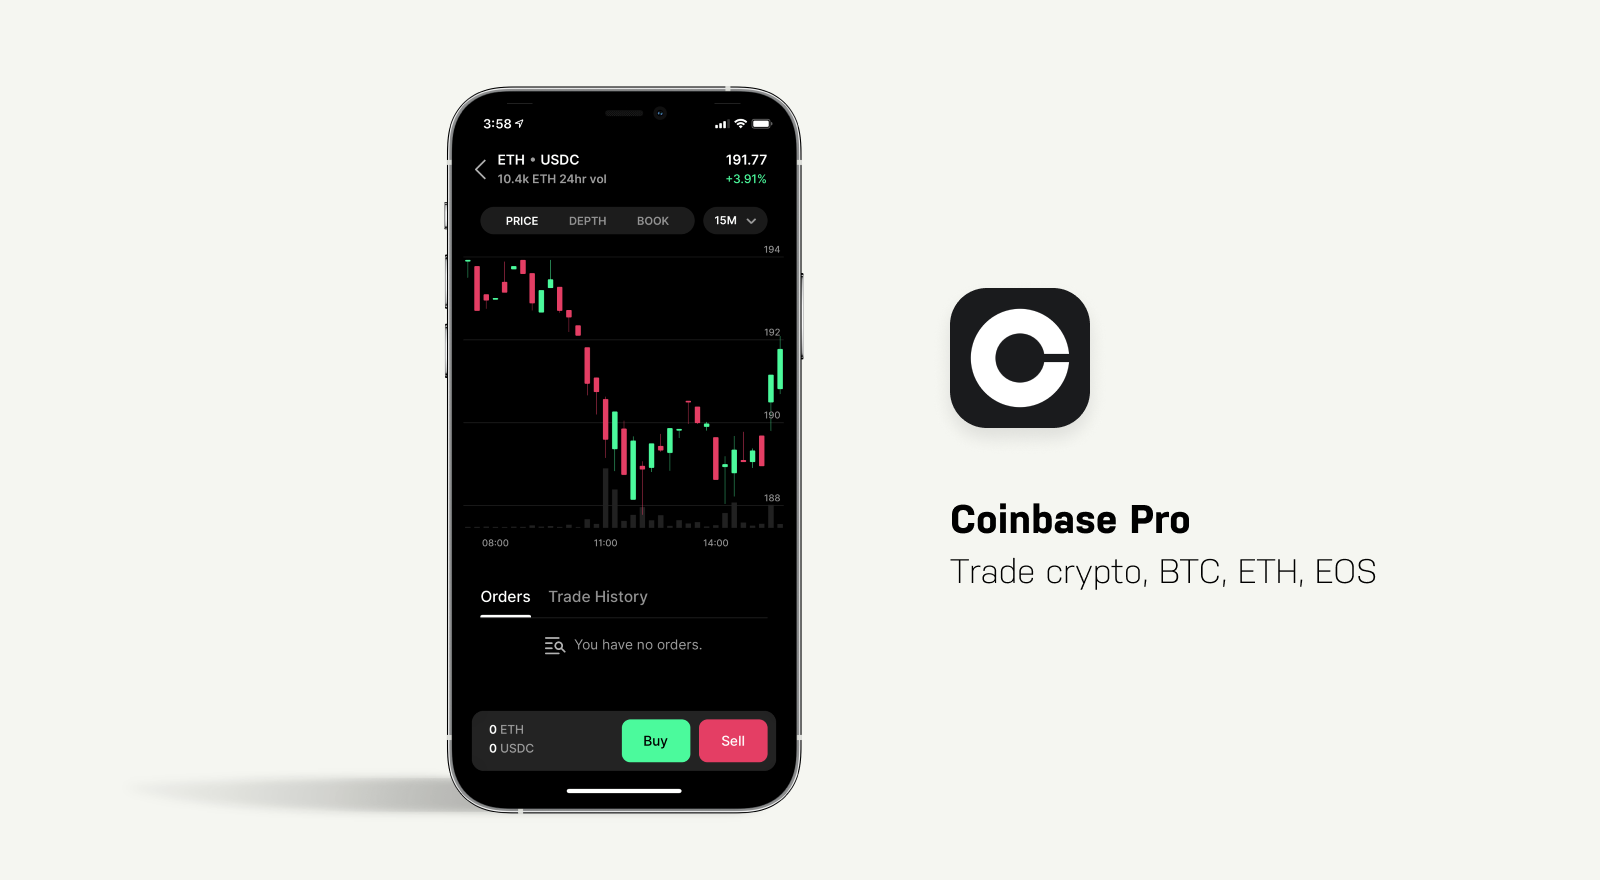 coinbase pro investing app